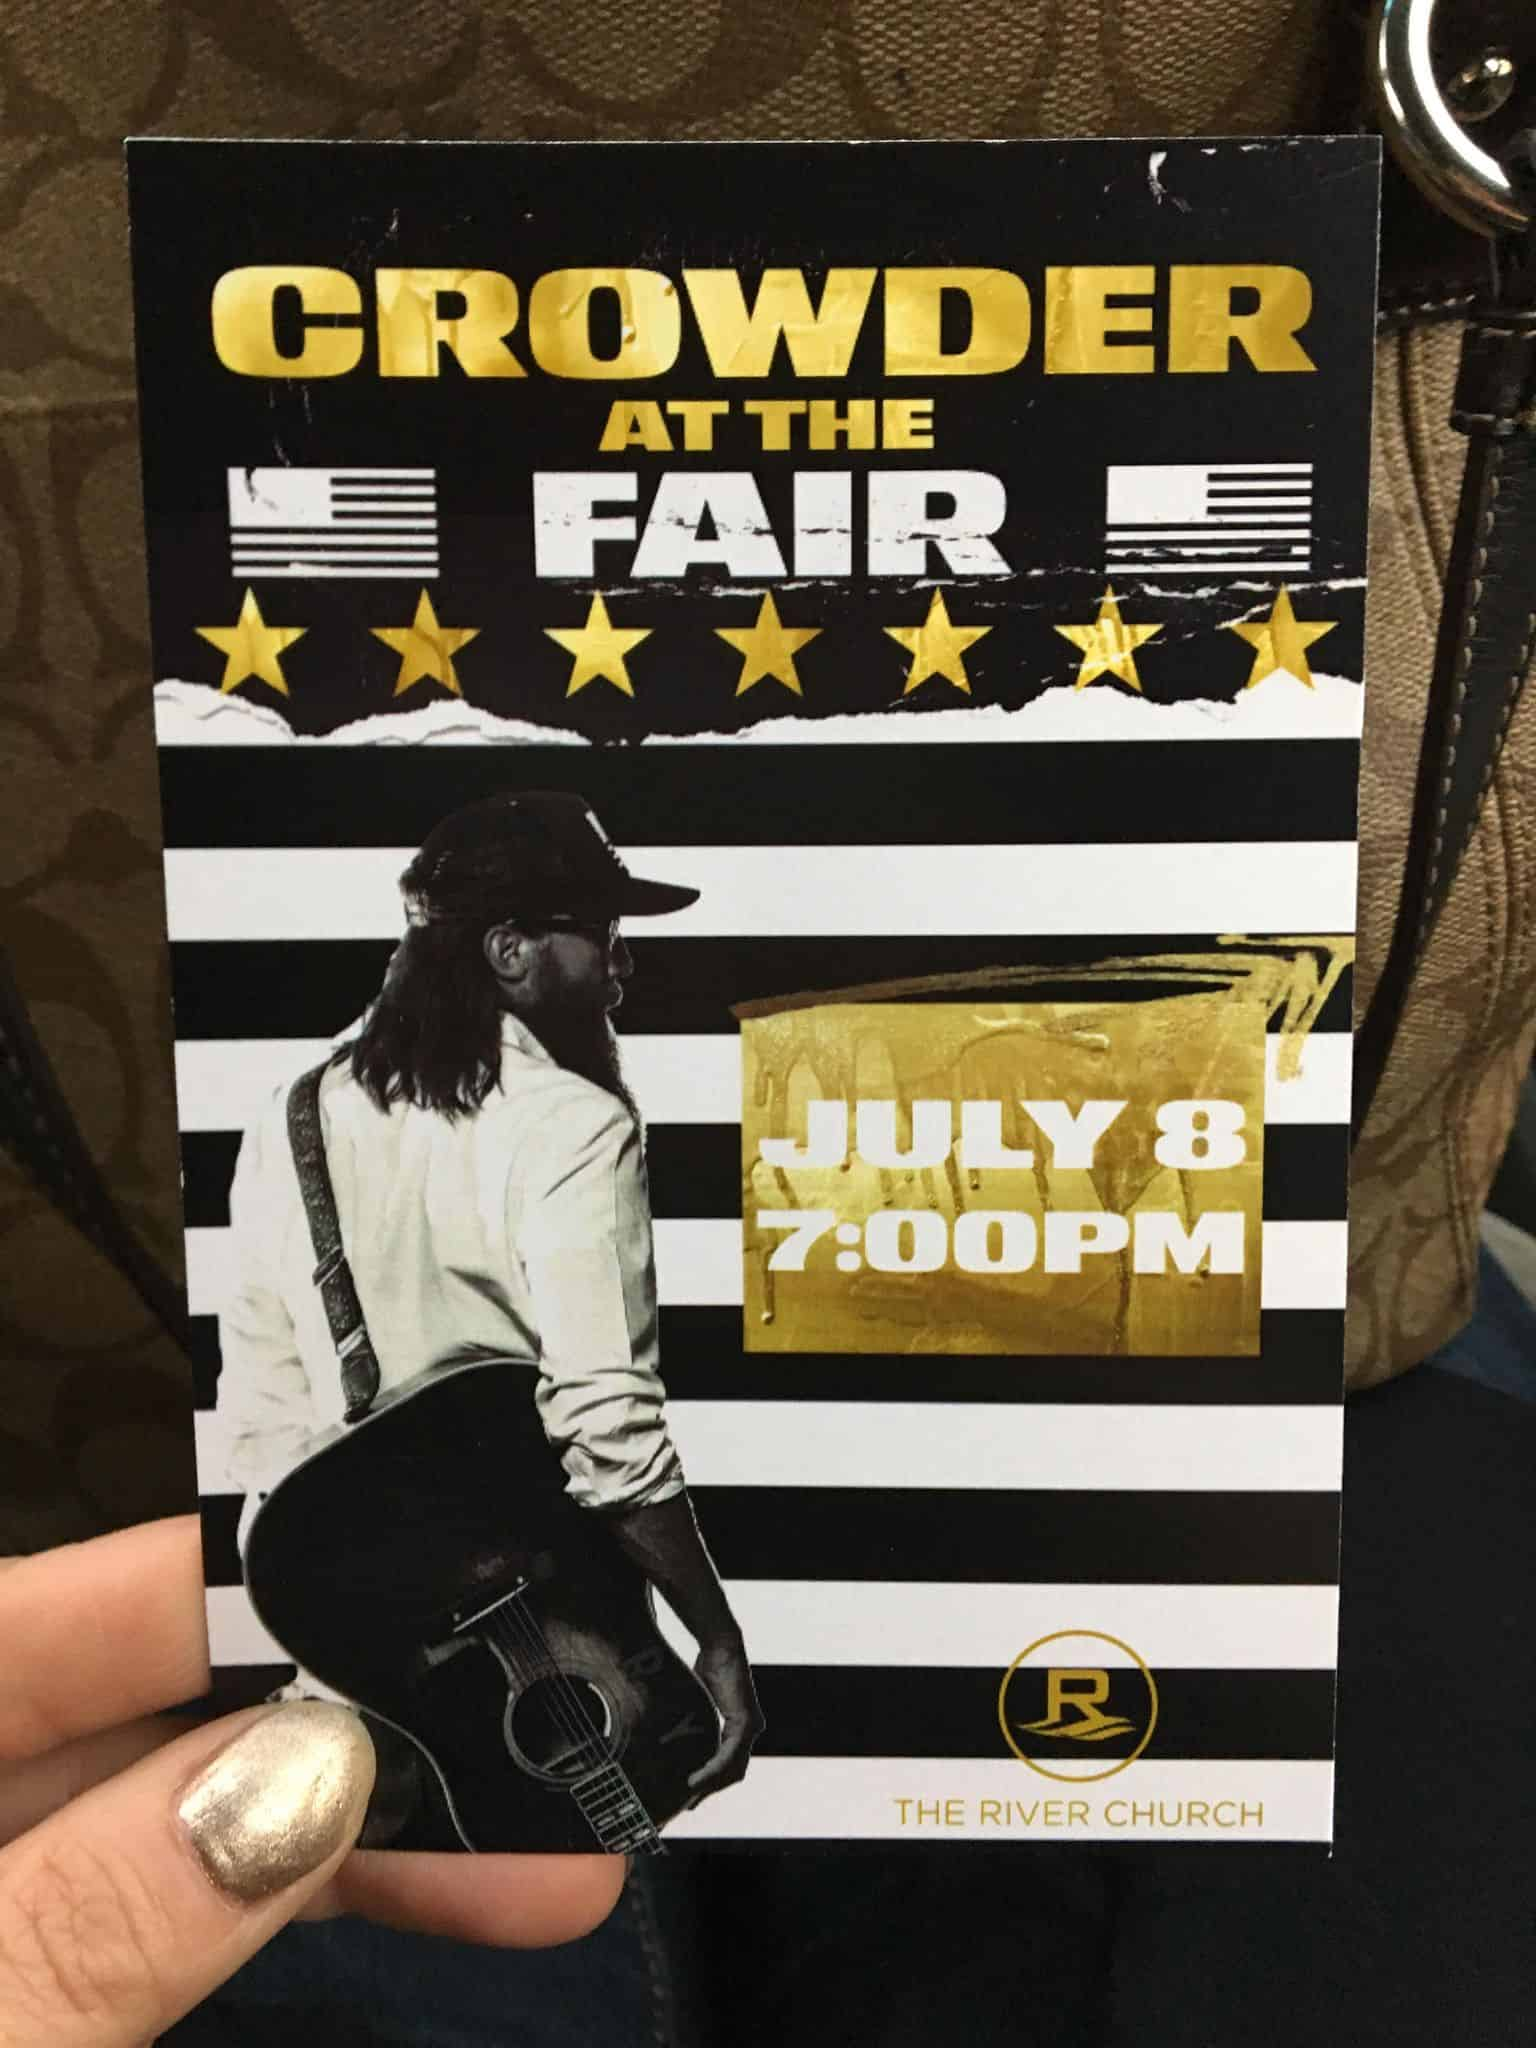 Crowder at the fair.